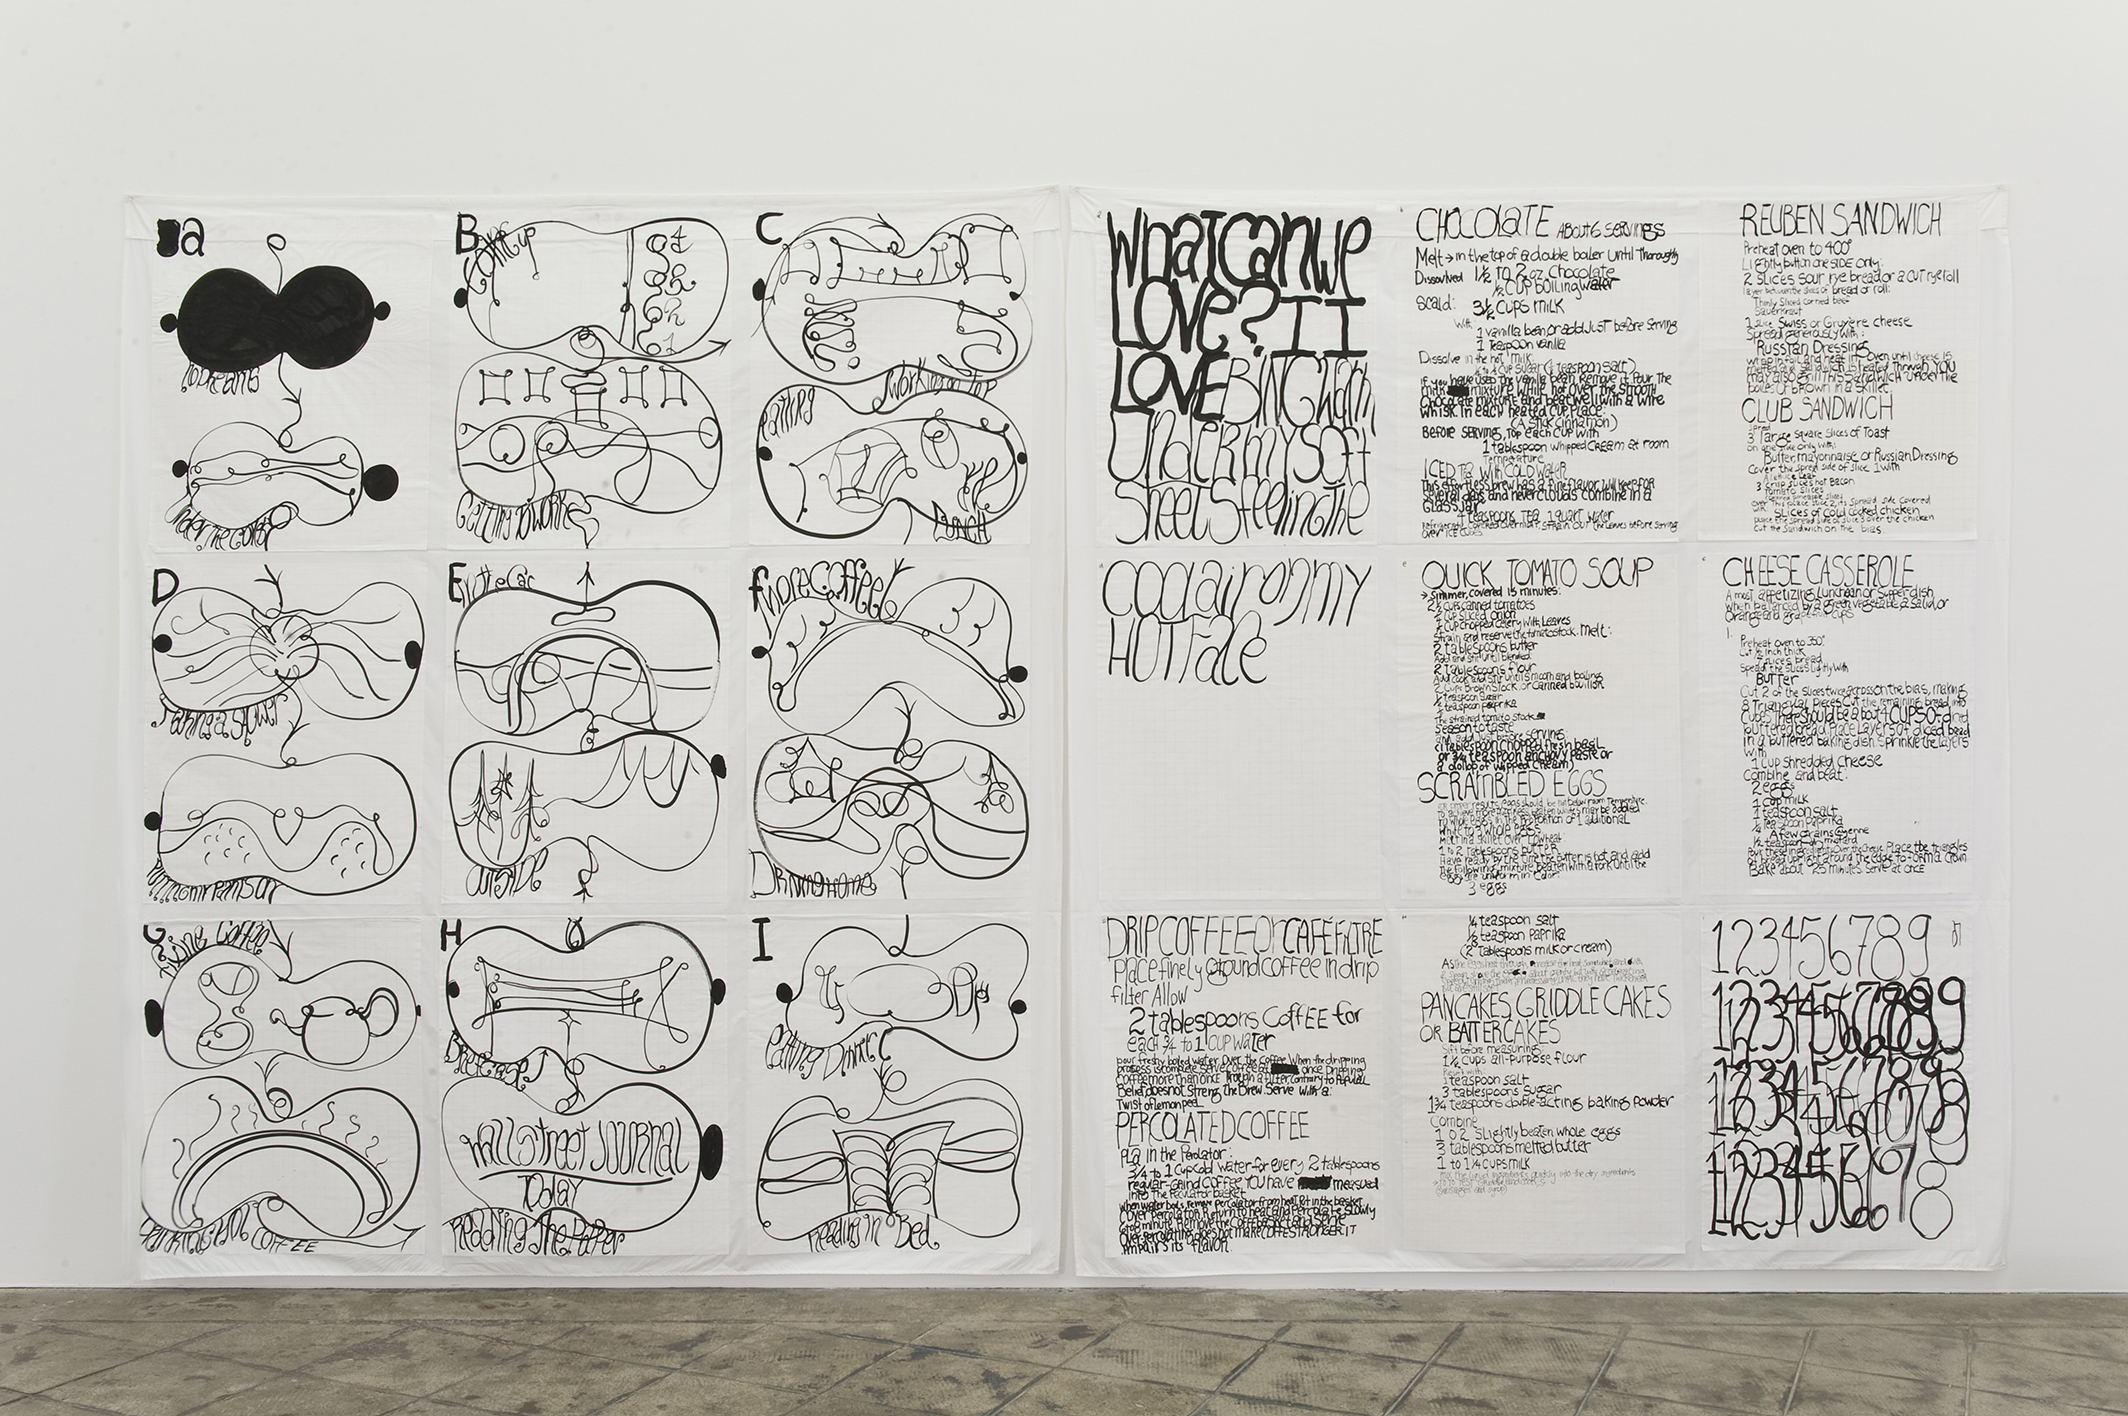 Learning From That Person's Work (Working Day & Recipes), 2006 |  | ProjecteSD